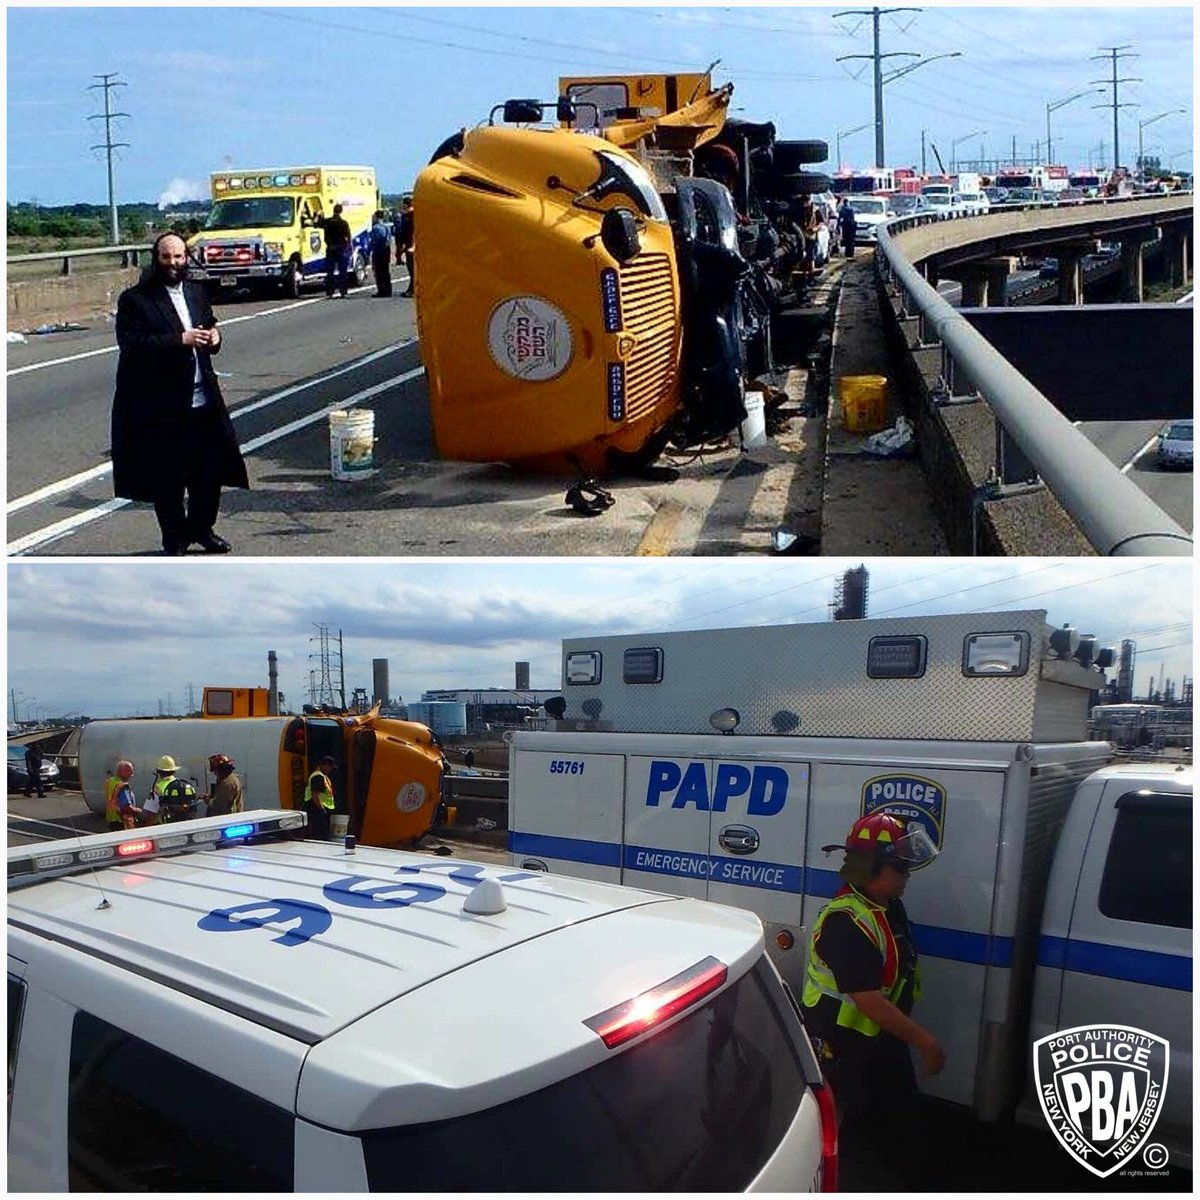 #PAPD ESU on scene of overturned school bus near Goethals Bridge &amp; NJ Turnpike with NJ State Police &amp; Linden PD &amp; FD. Some minor injuries reported. Consider alternate route. #PAPDPROTECTSNYNJ #NJSP #lindenpd #lindenfd #PAPDESU<br>http://pic.twitter.com/Nw2YOPjQEc